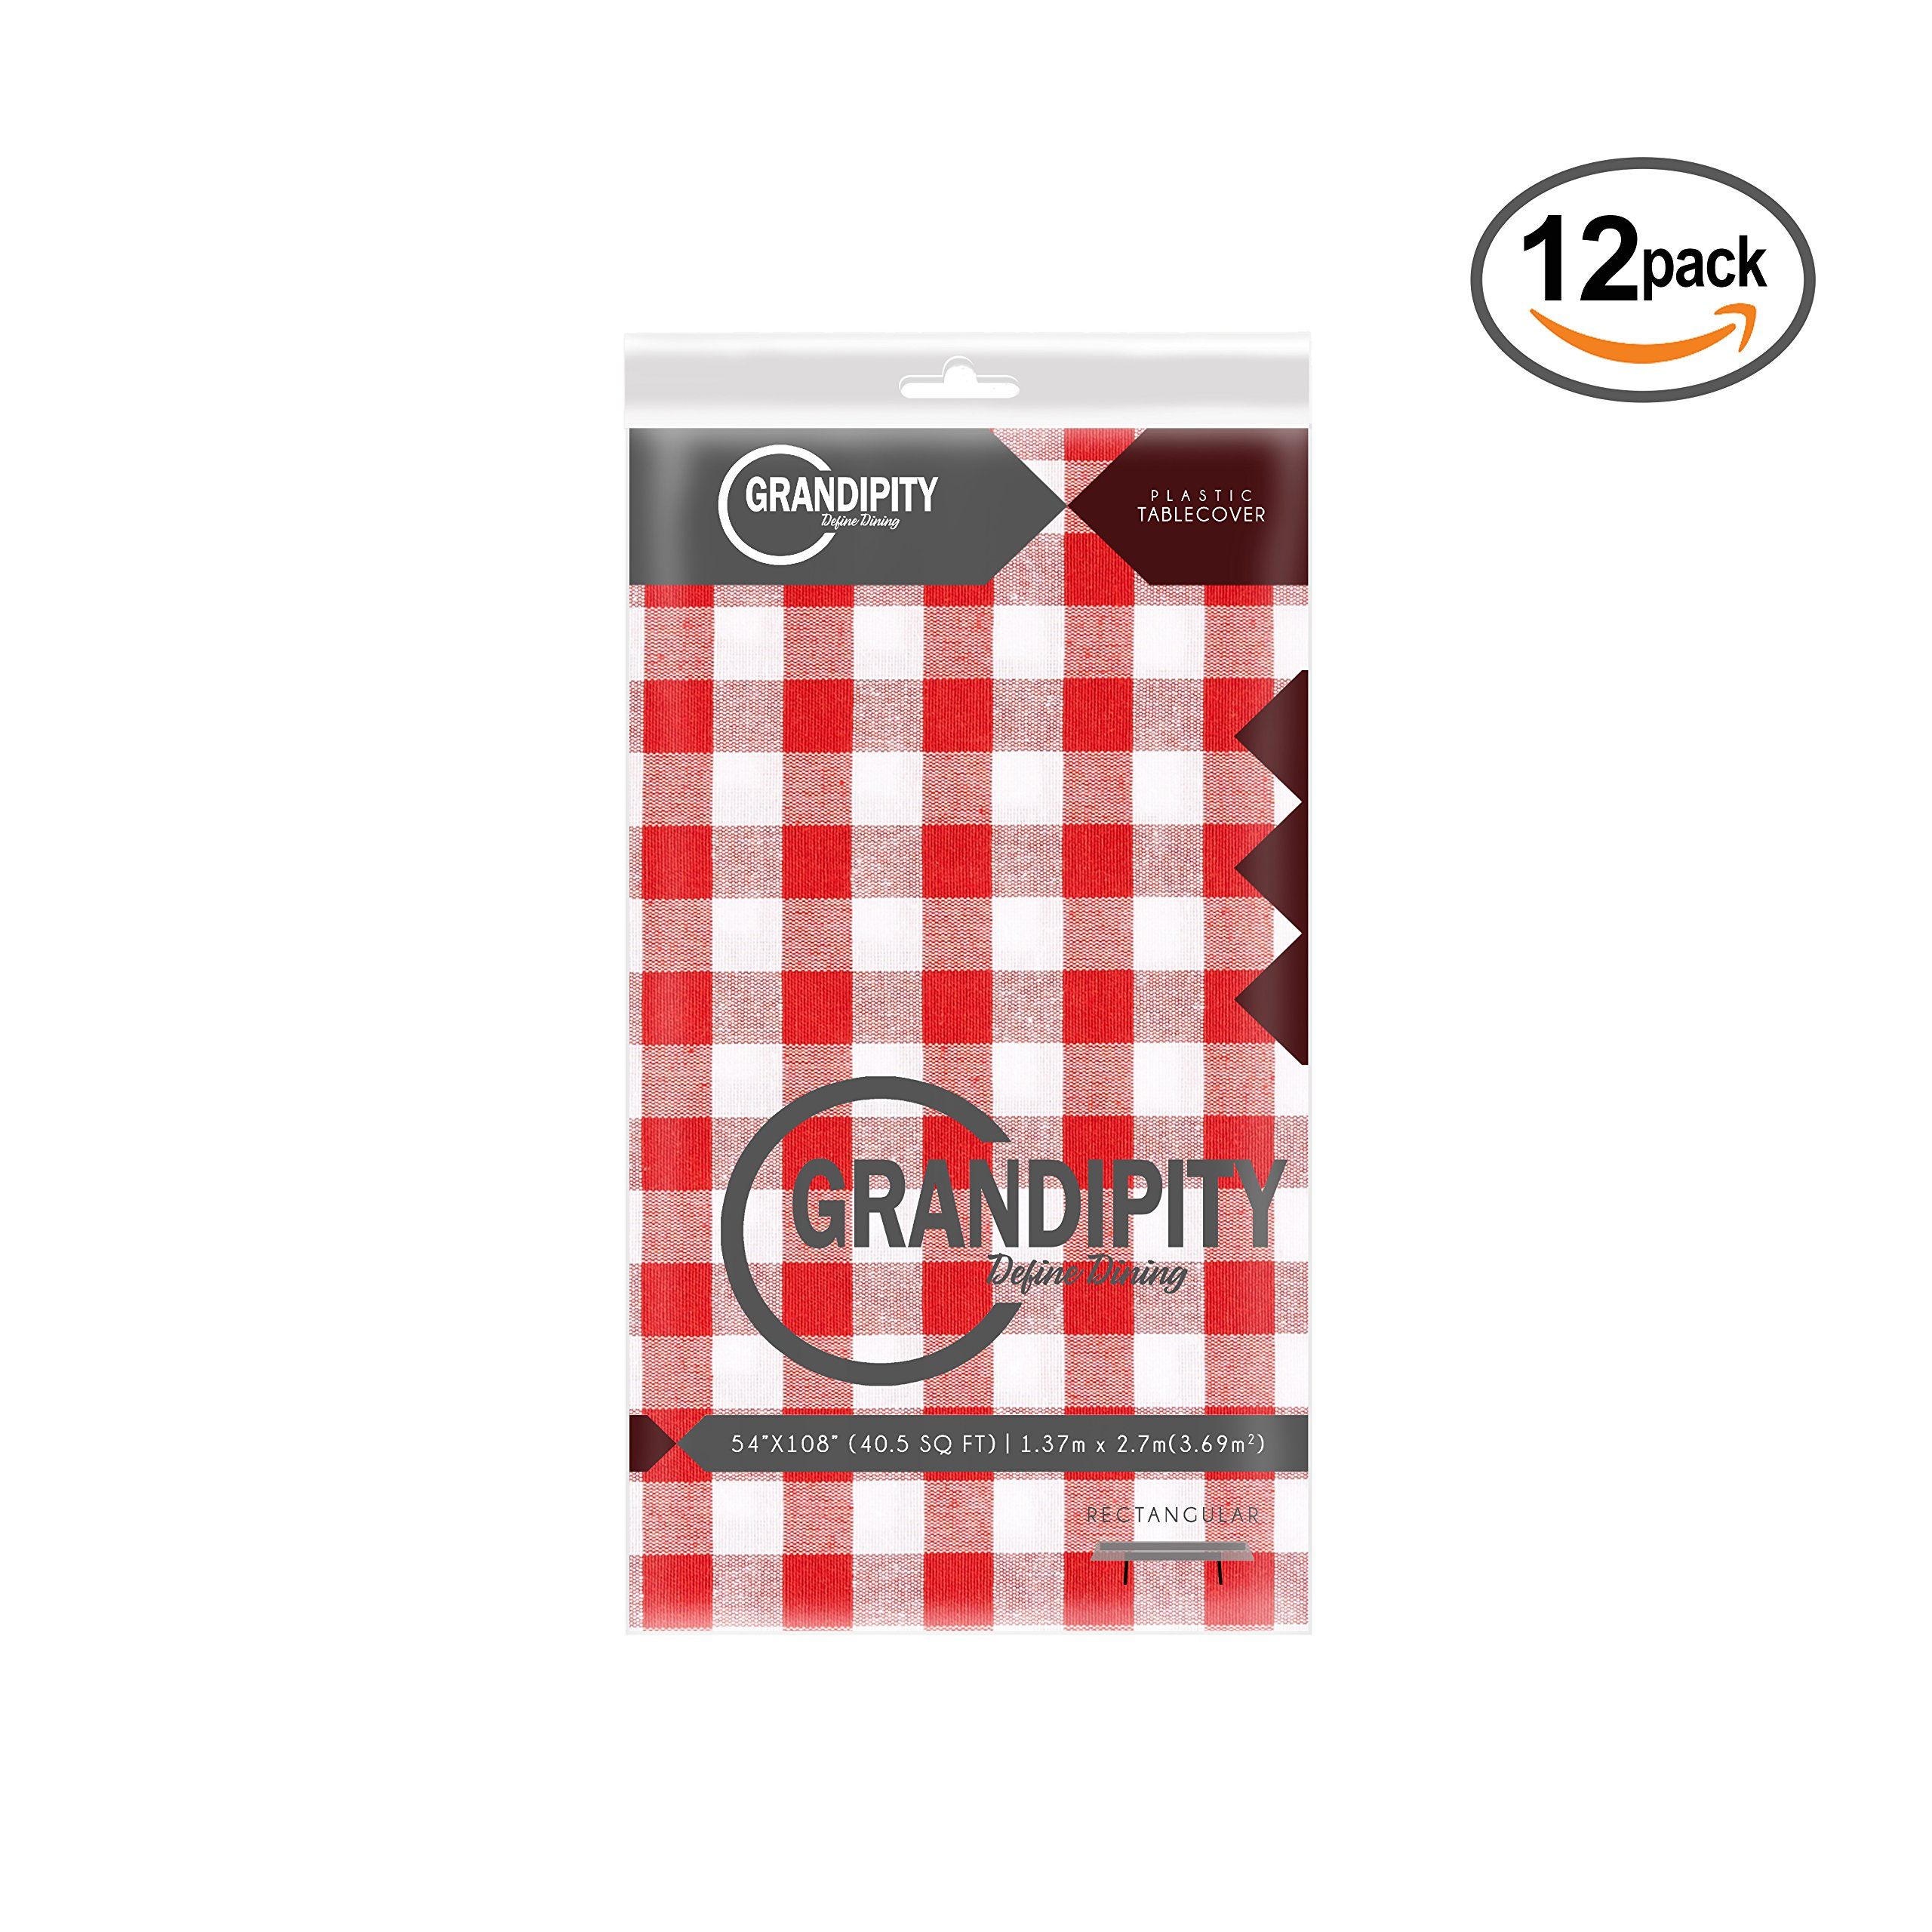 Red Gingham Checkered 12 Pack Premium Disposable Plastic Picnic Tablecloth 54 Inch. x 108 Inch. Rectangle Table Cover By Grandipity by Grandipity (Image #3)